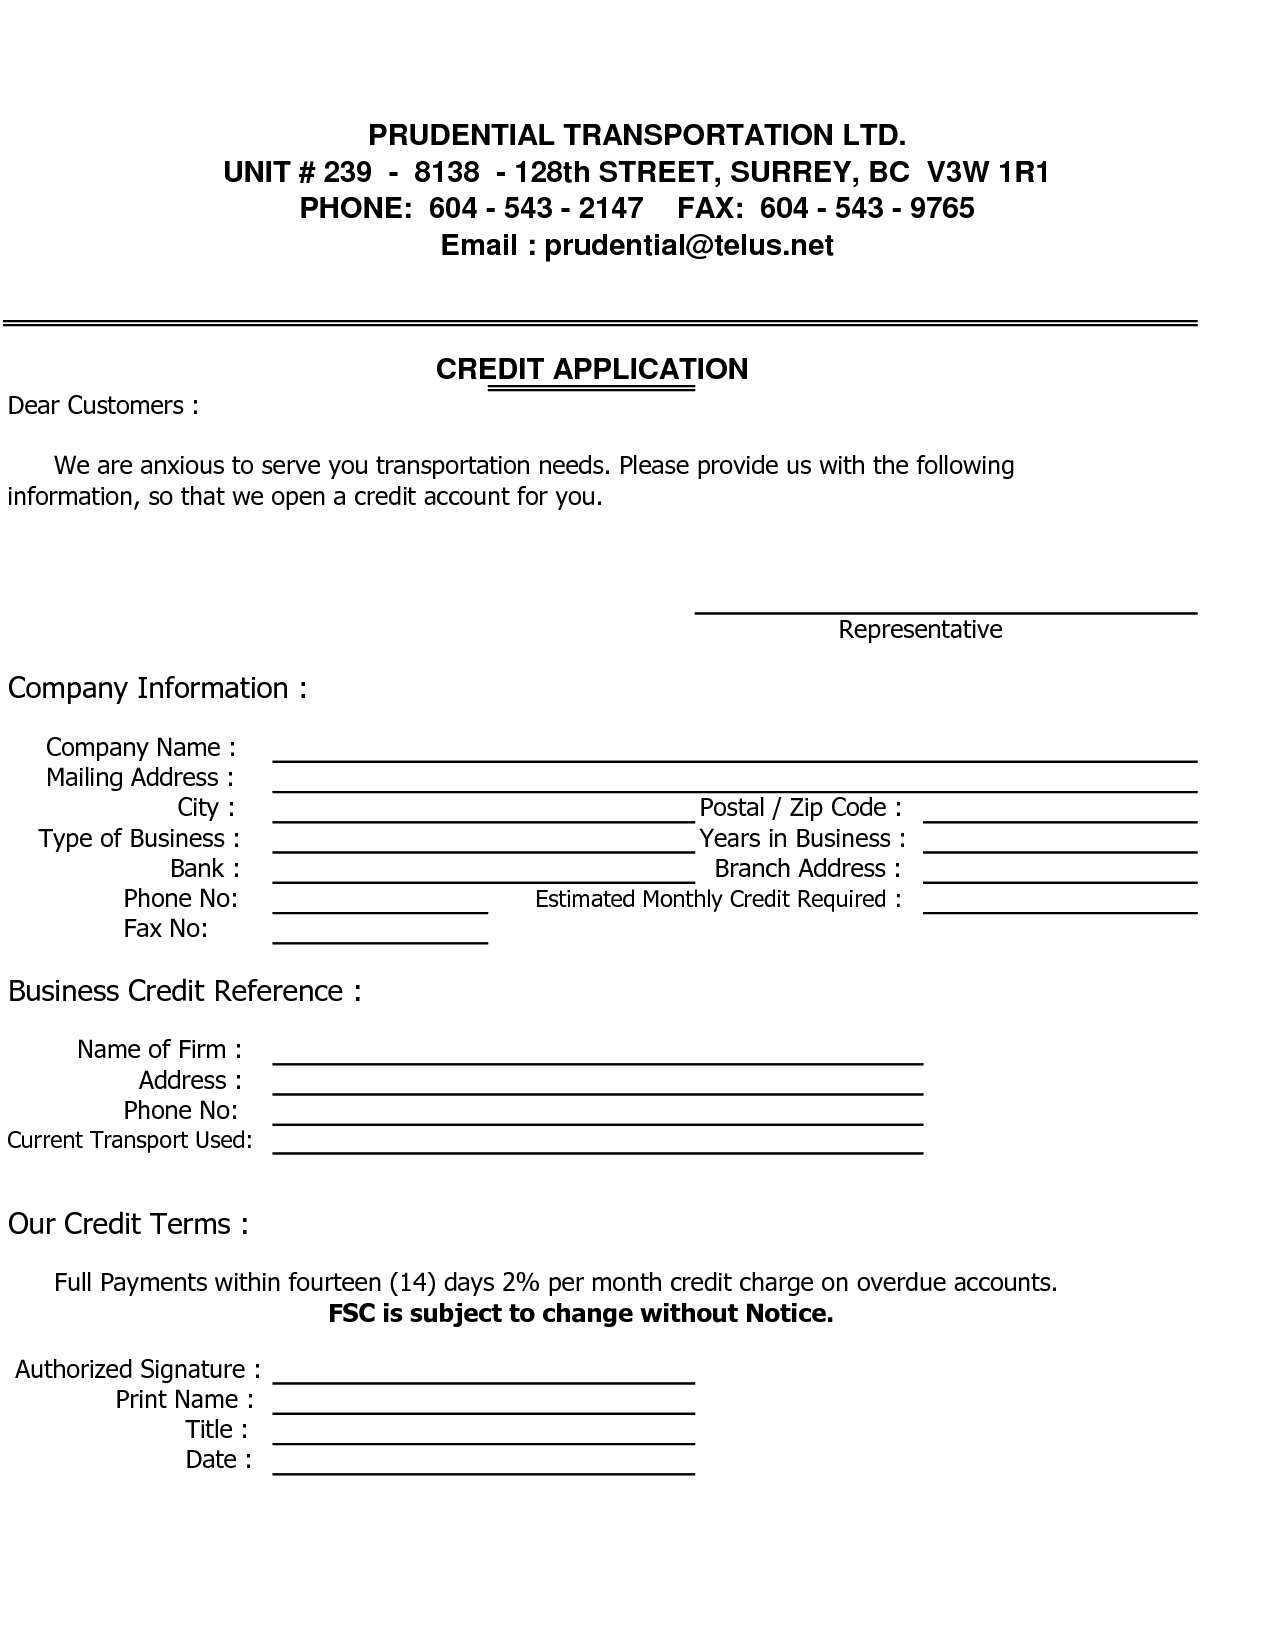 Sample Credit Reference Letter Template Images - Business Credit - Free Printable Business Credit Application Form